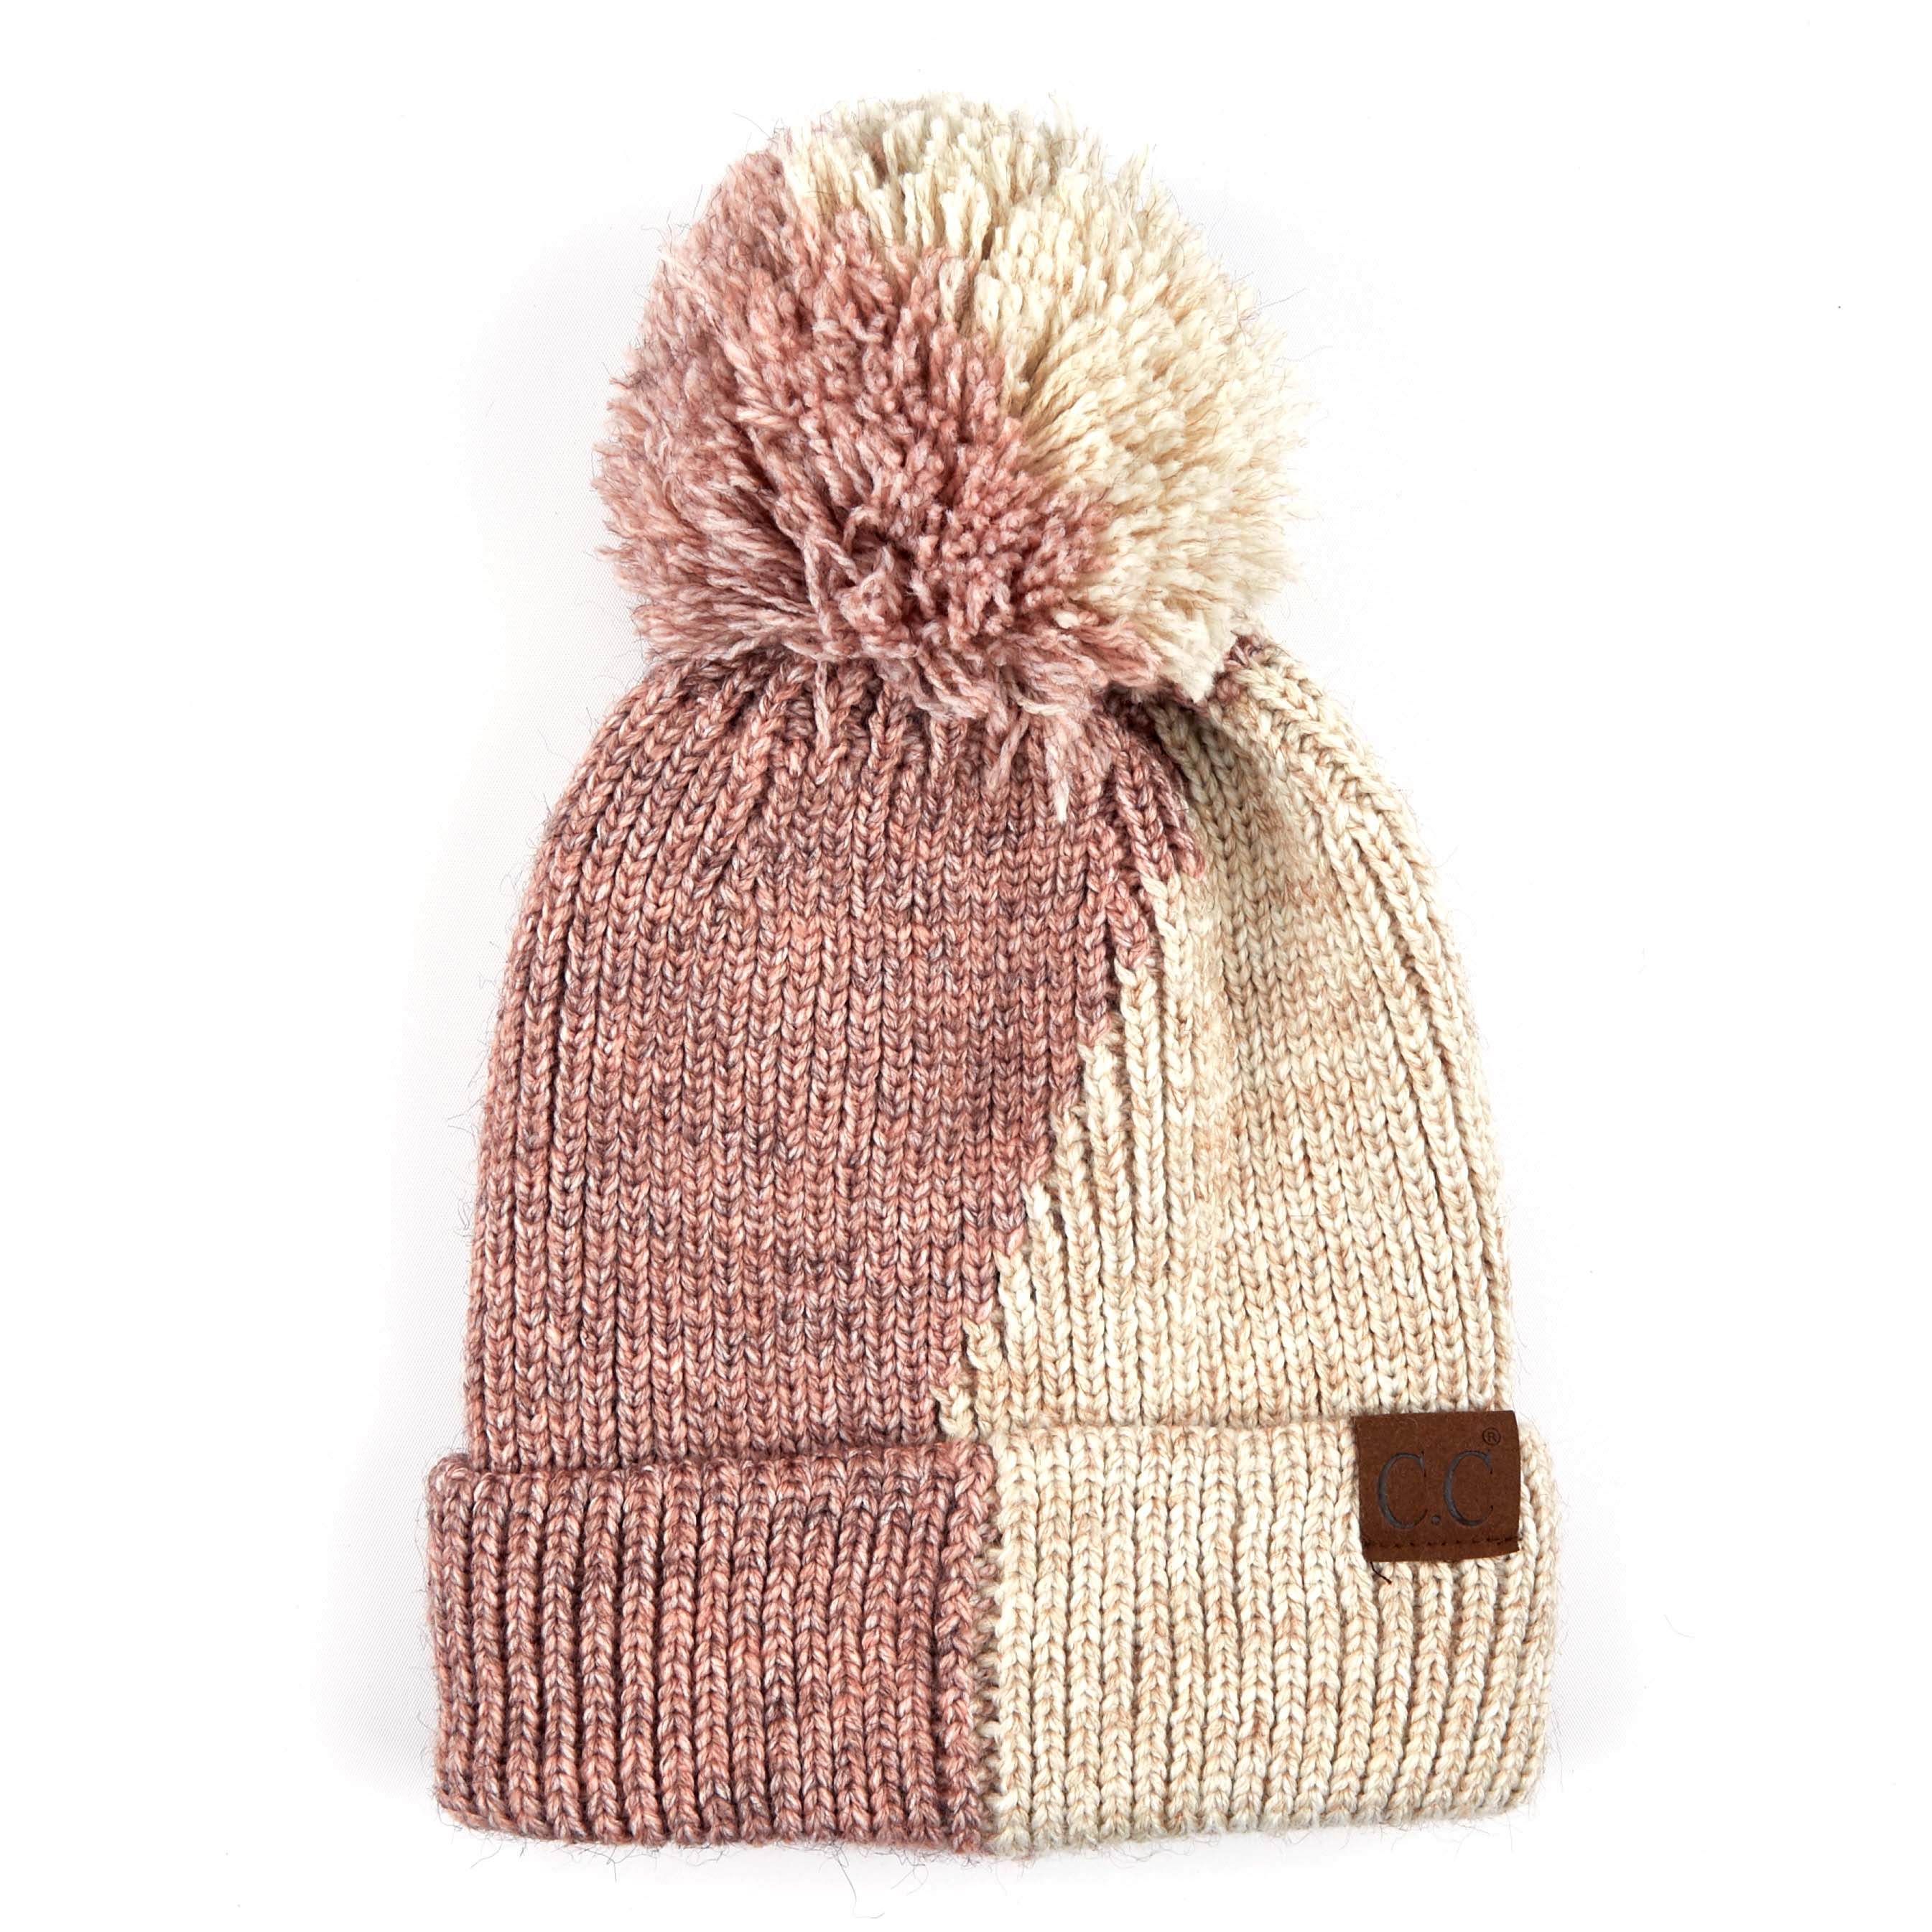 'C.C®' Dual Color Beanie - Rose / Beige